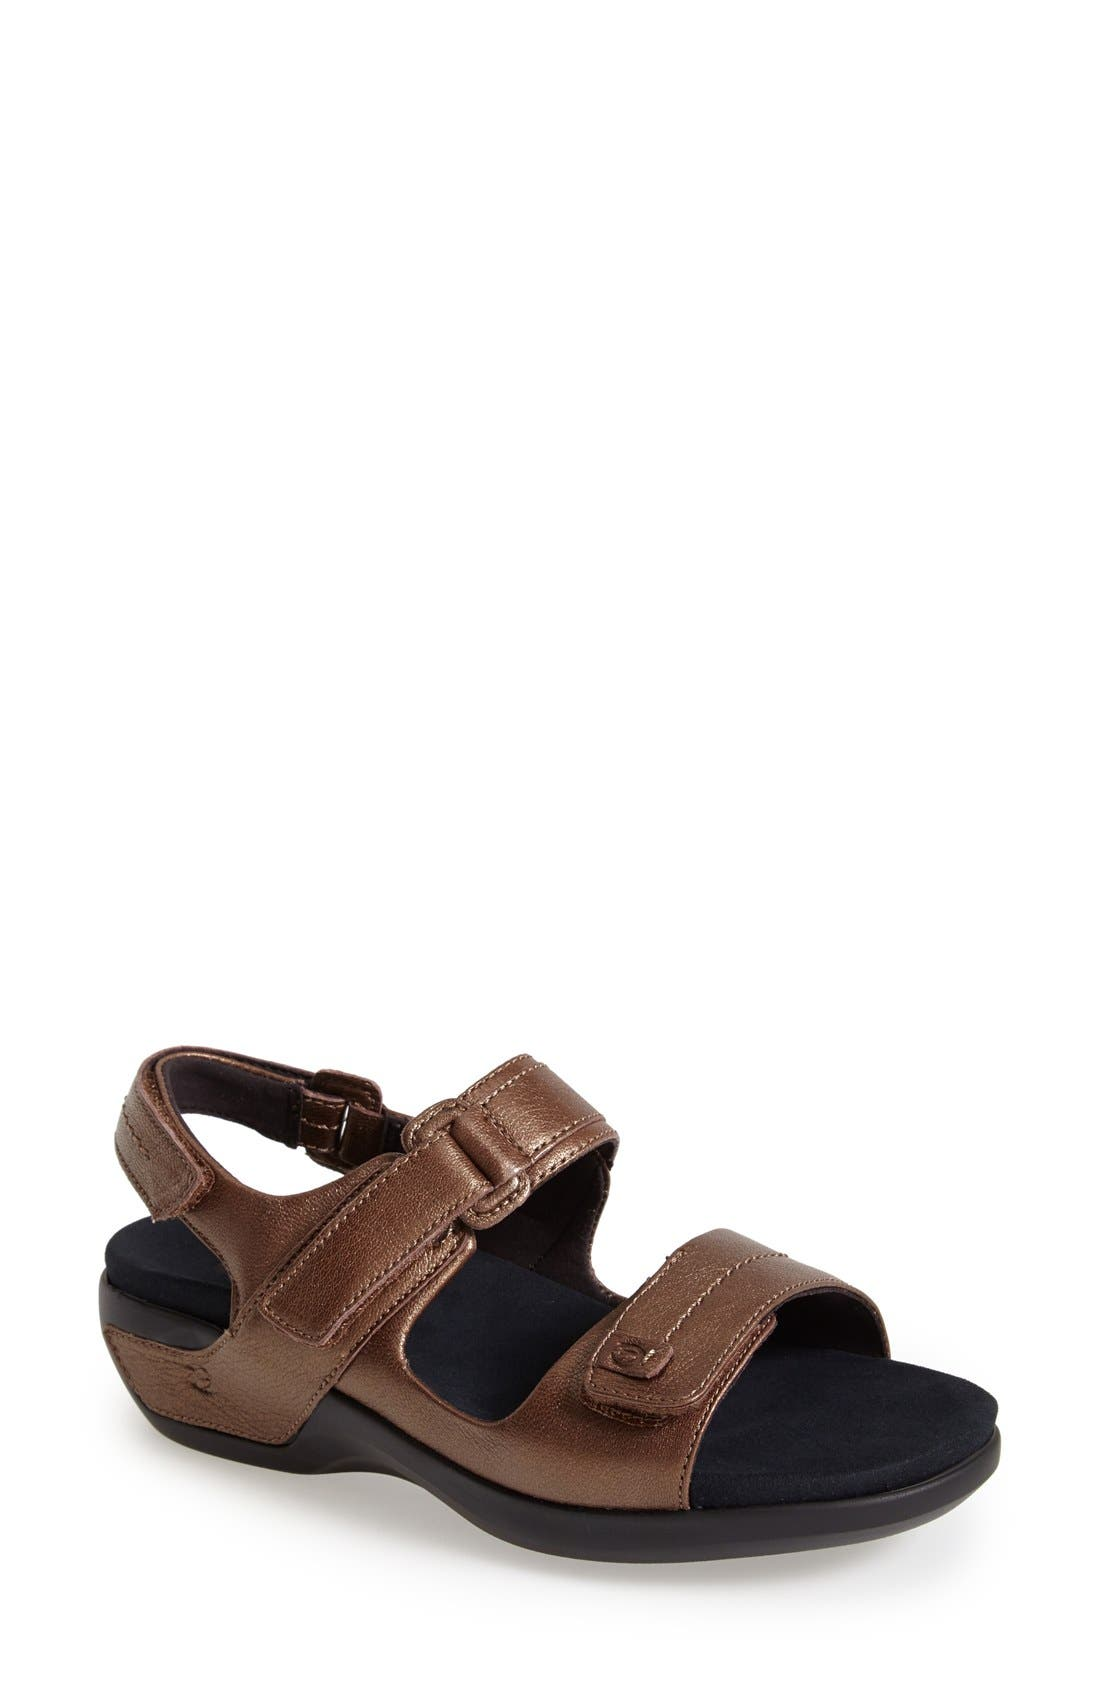 Aravon 'Katy' Leather Sandal (Women)